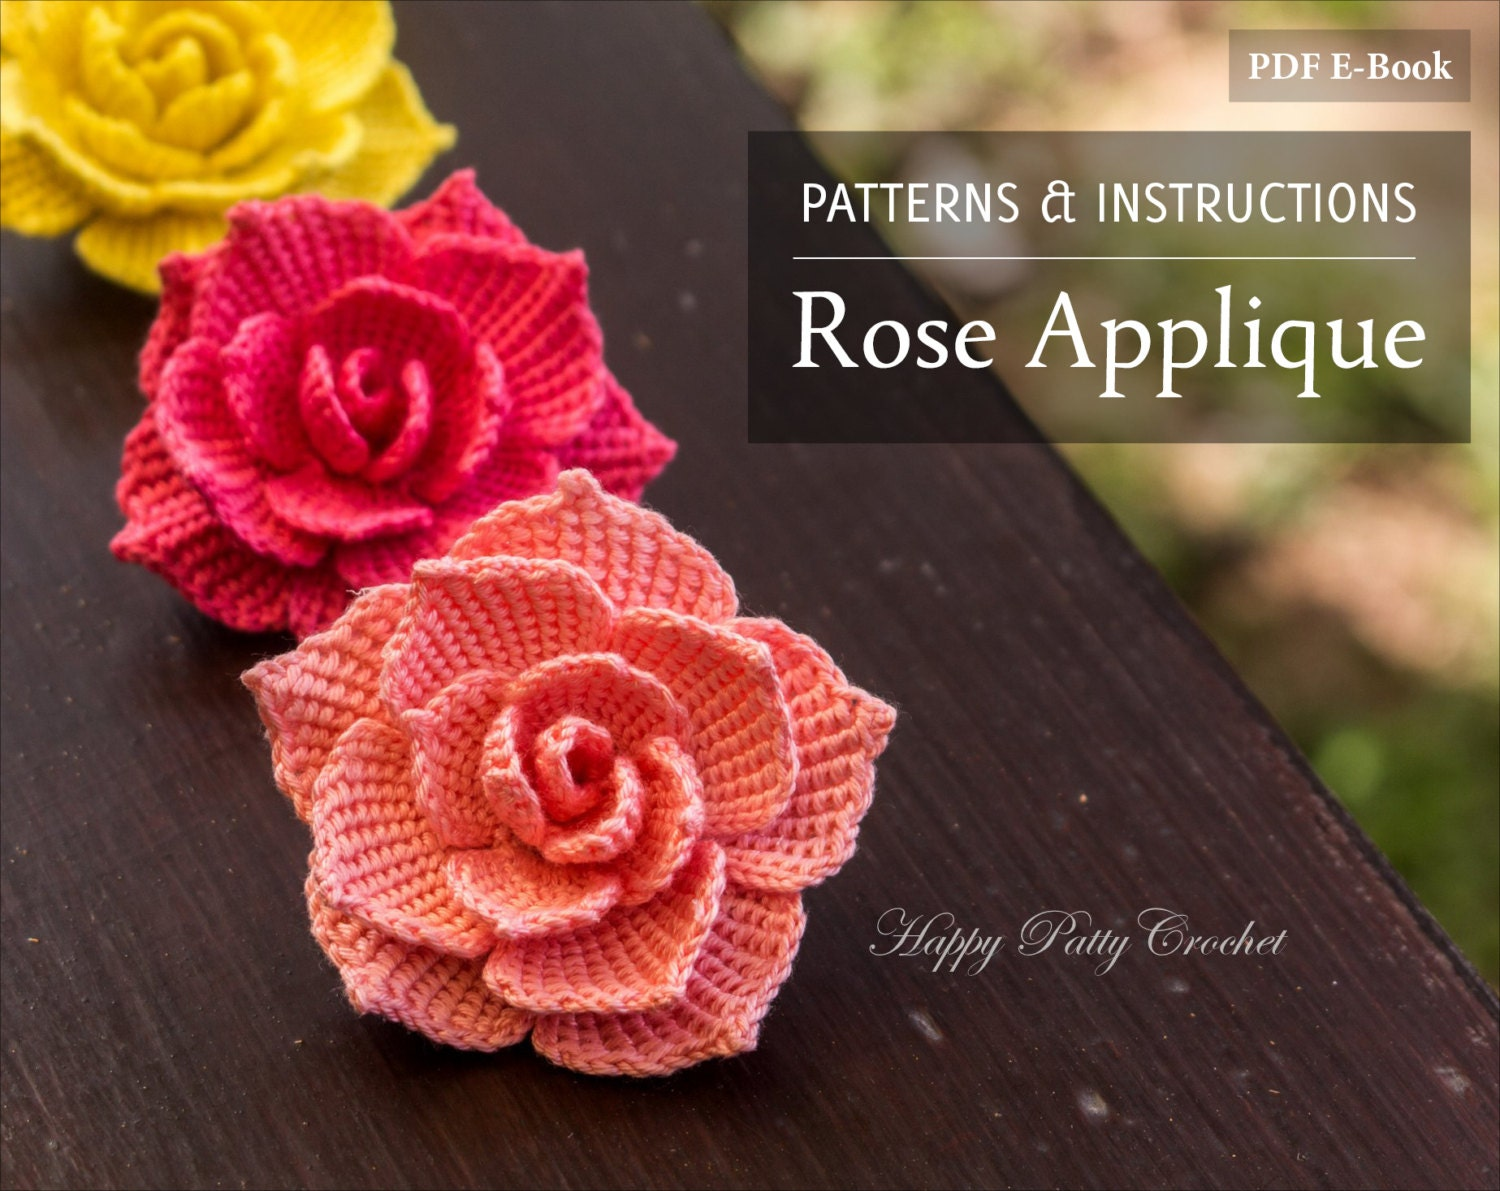 crochet rose pattern crochet flower pattern for a rose. Black Bedroom Furniture Sets. Home Design Ideas